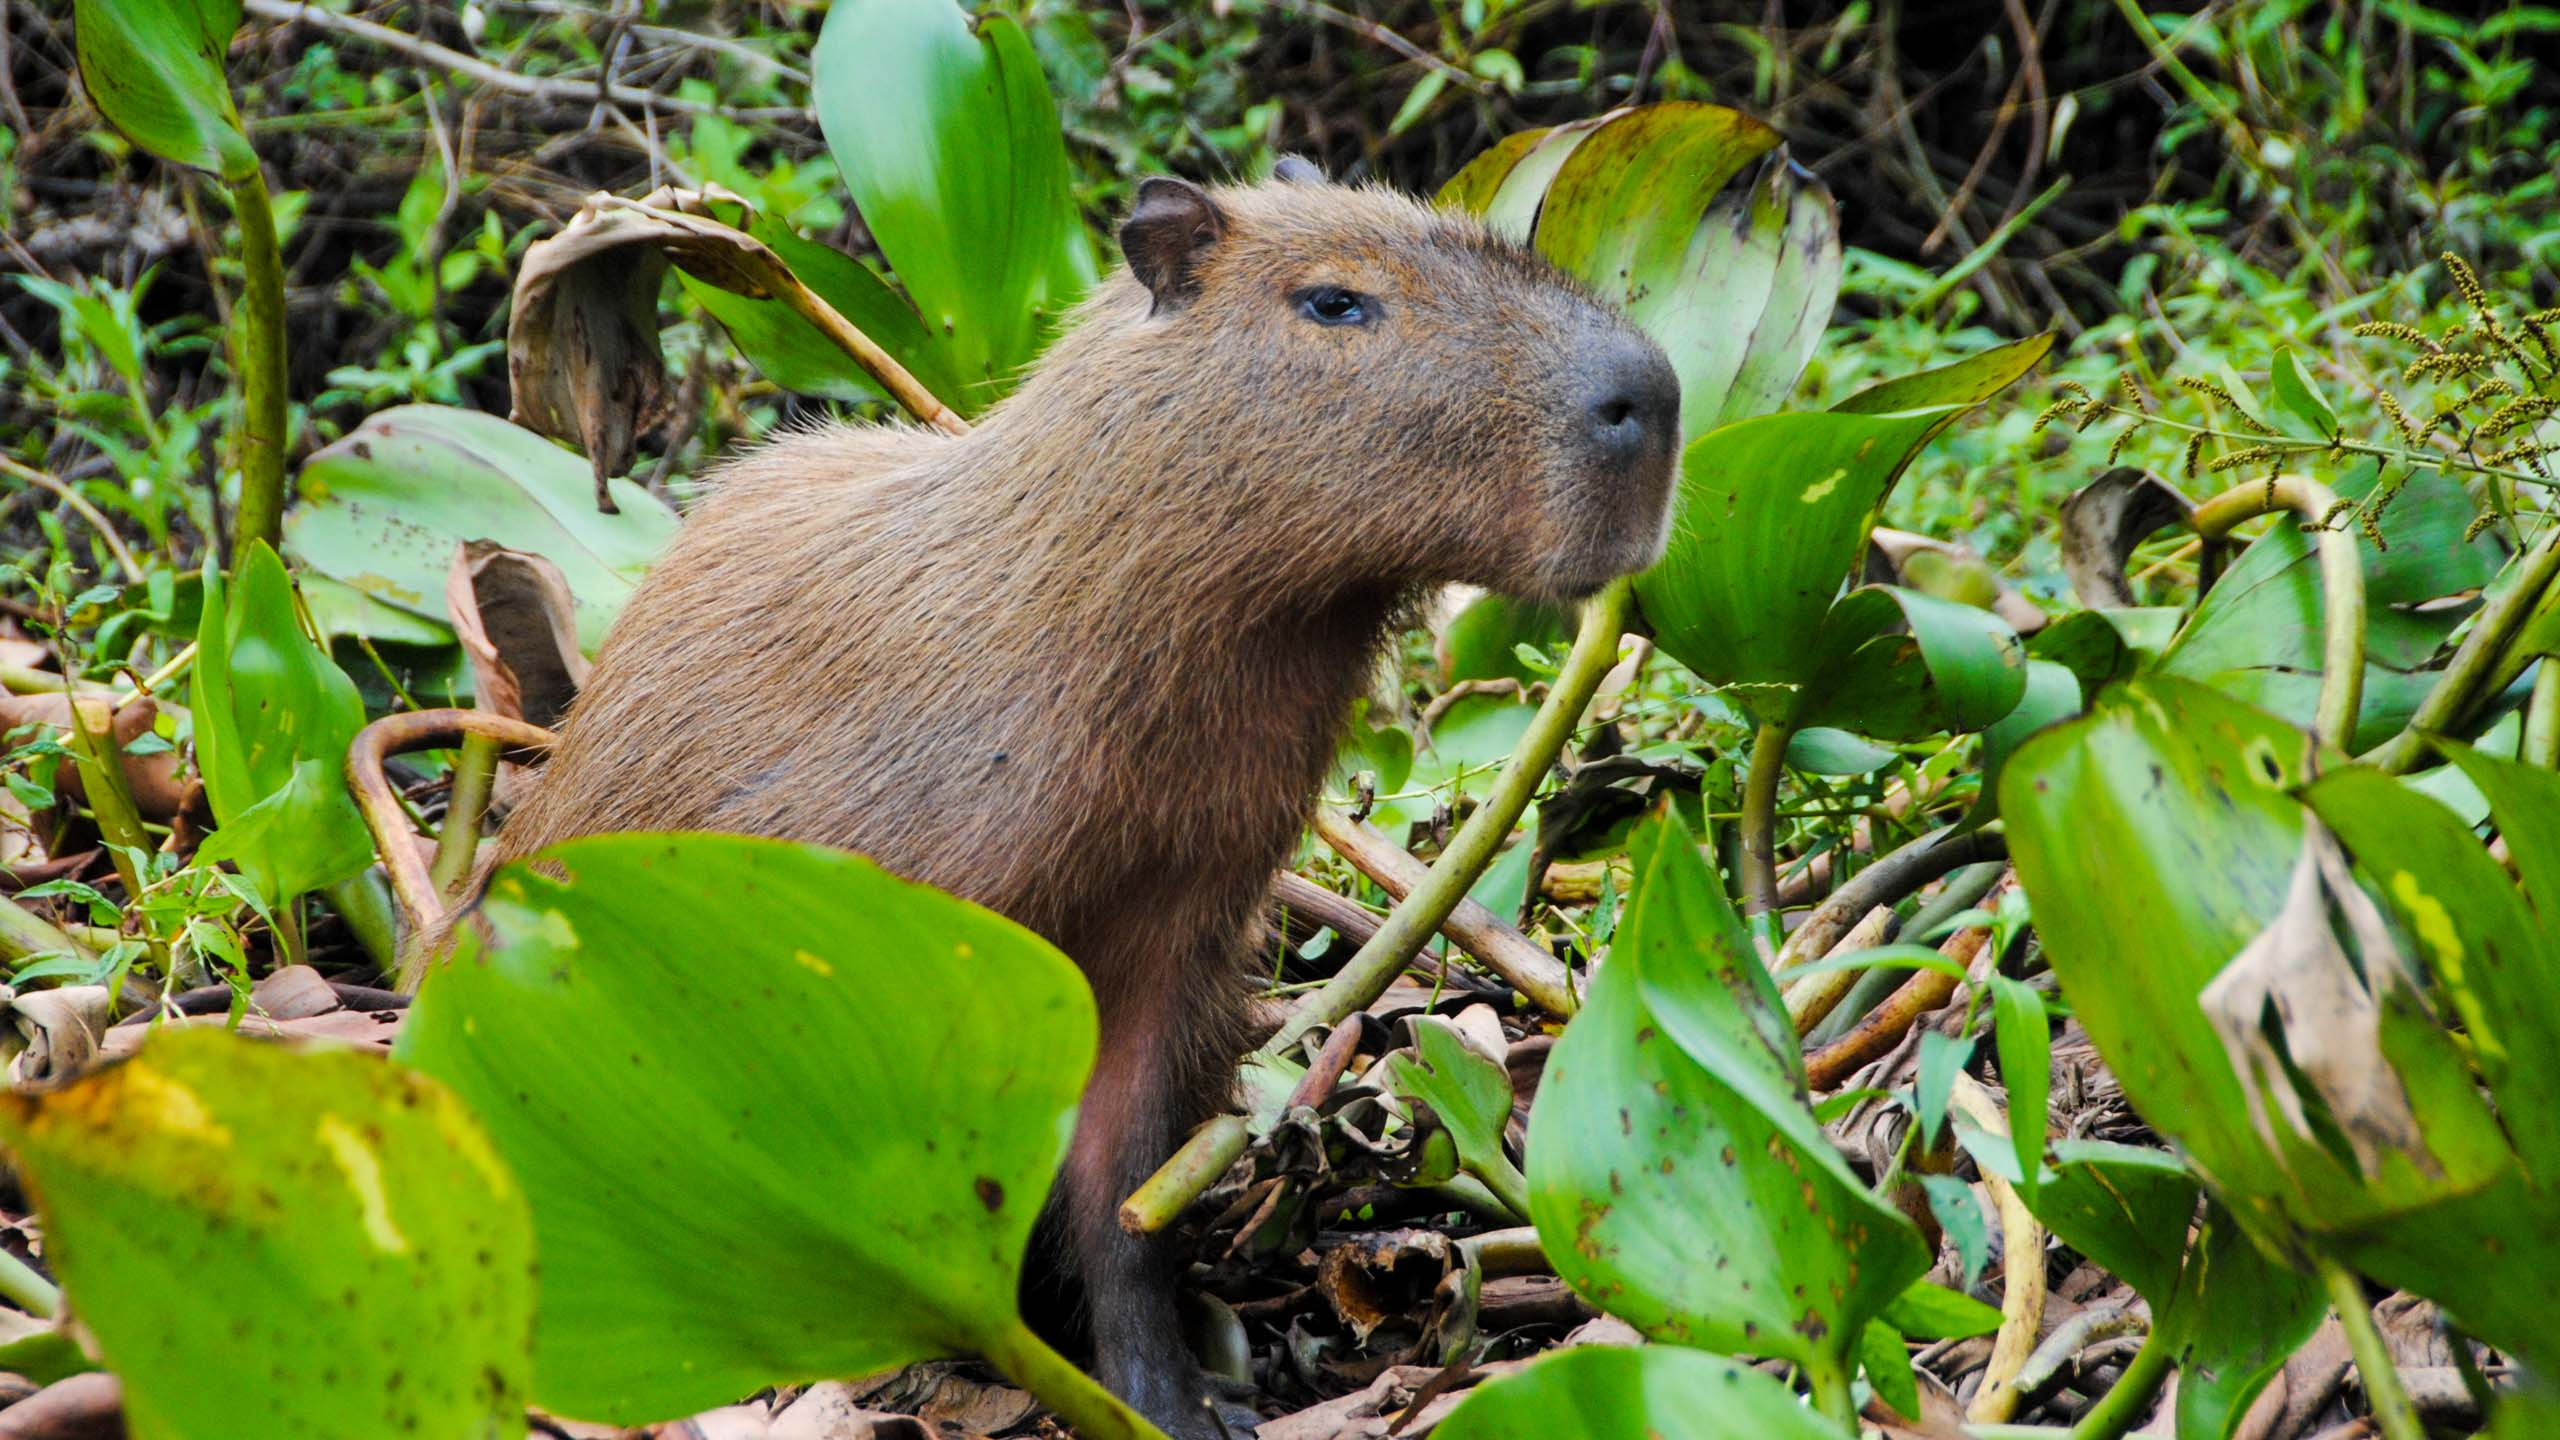 Capybara stands in leaves in Brazil